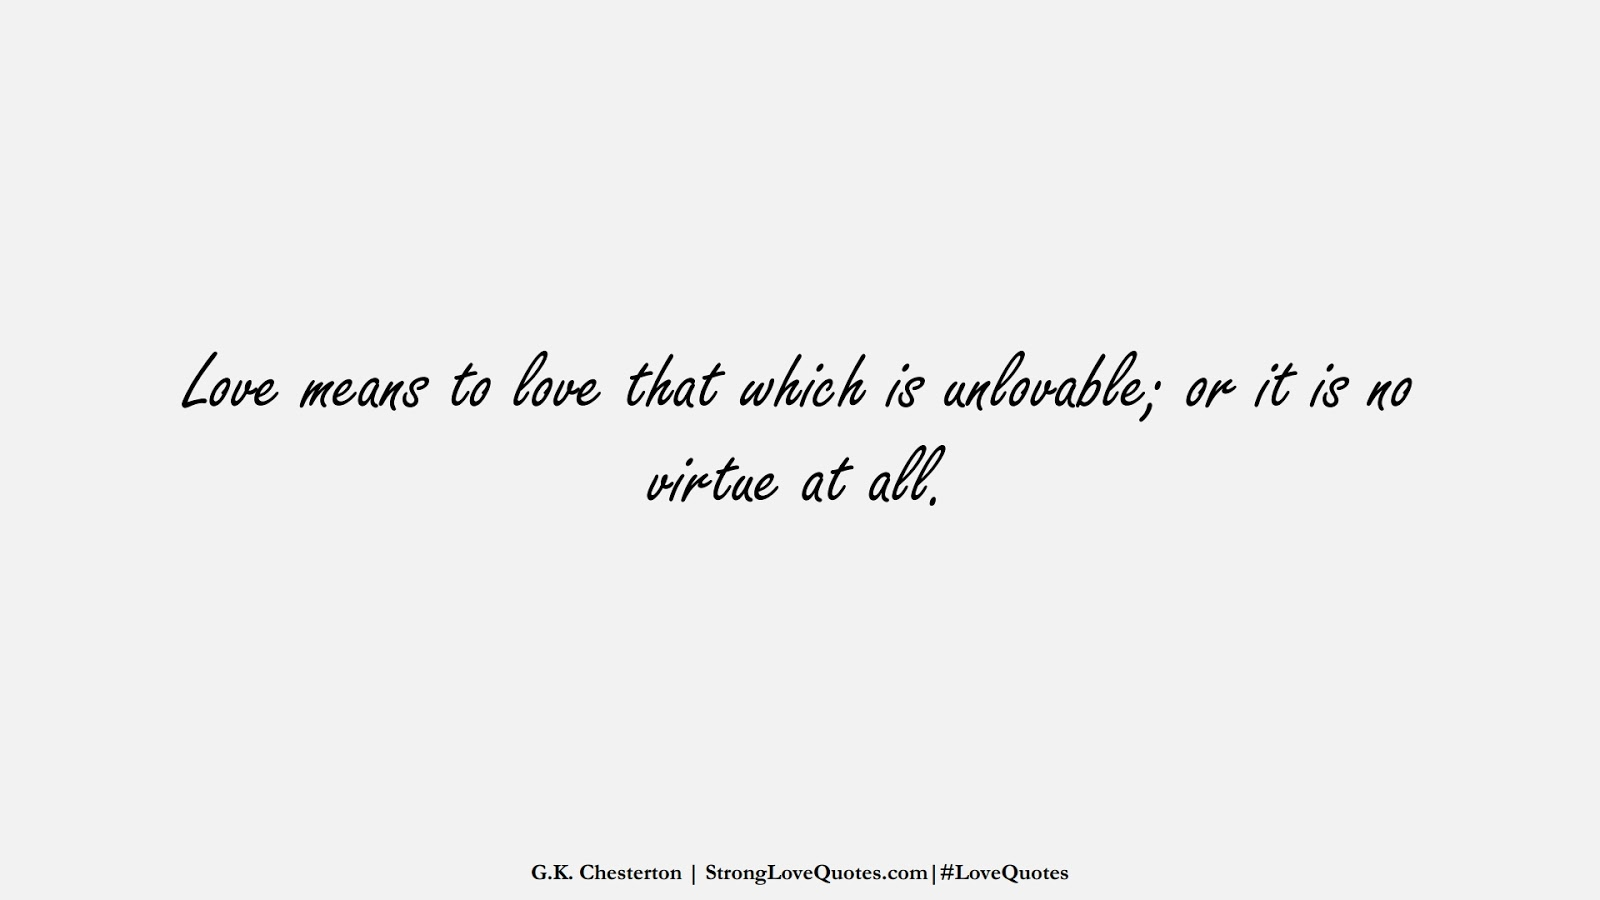 Love means to love that which is unlovable; or it is no virtue at all. (G.K. Chesterton);  #LoveQuotes